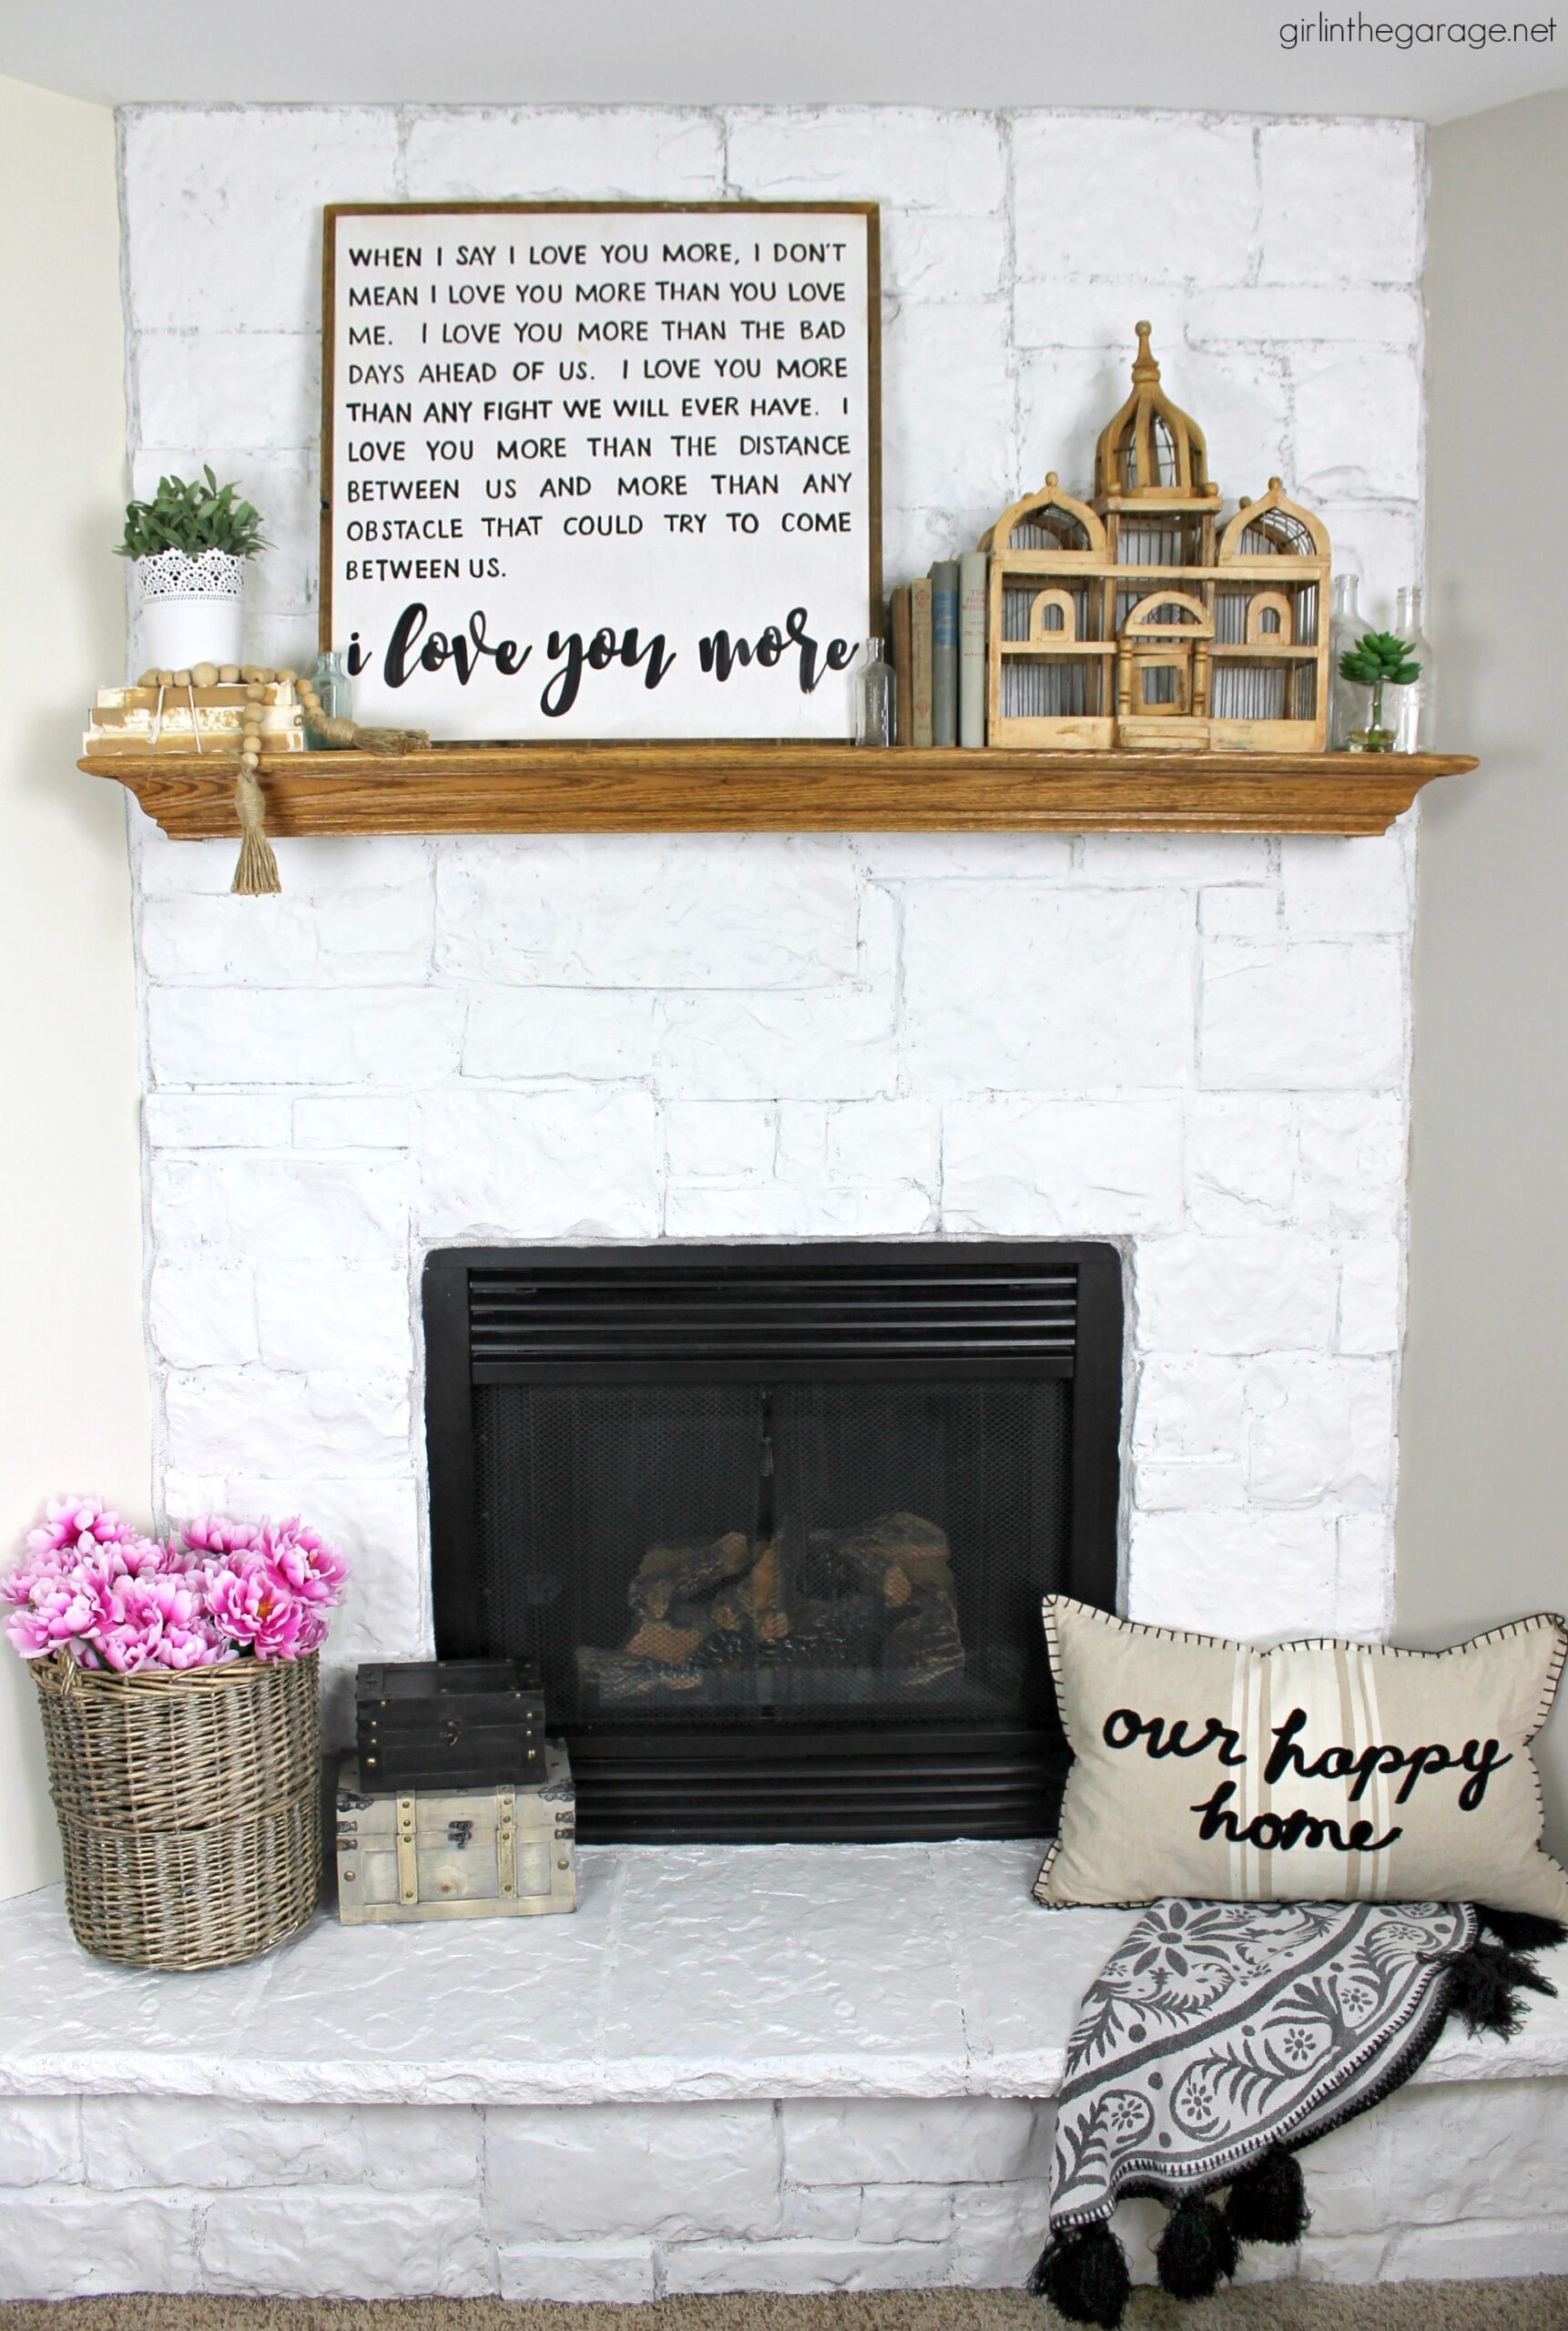 How to easily paint a stone fireplace Alabaster white with helpful Purdy products meant for rough surfaces. #ad DIY makeover ideas by Girl in the Garage